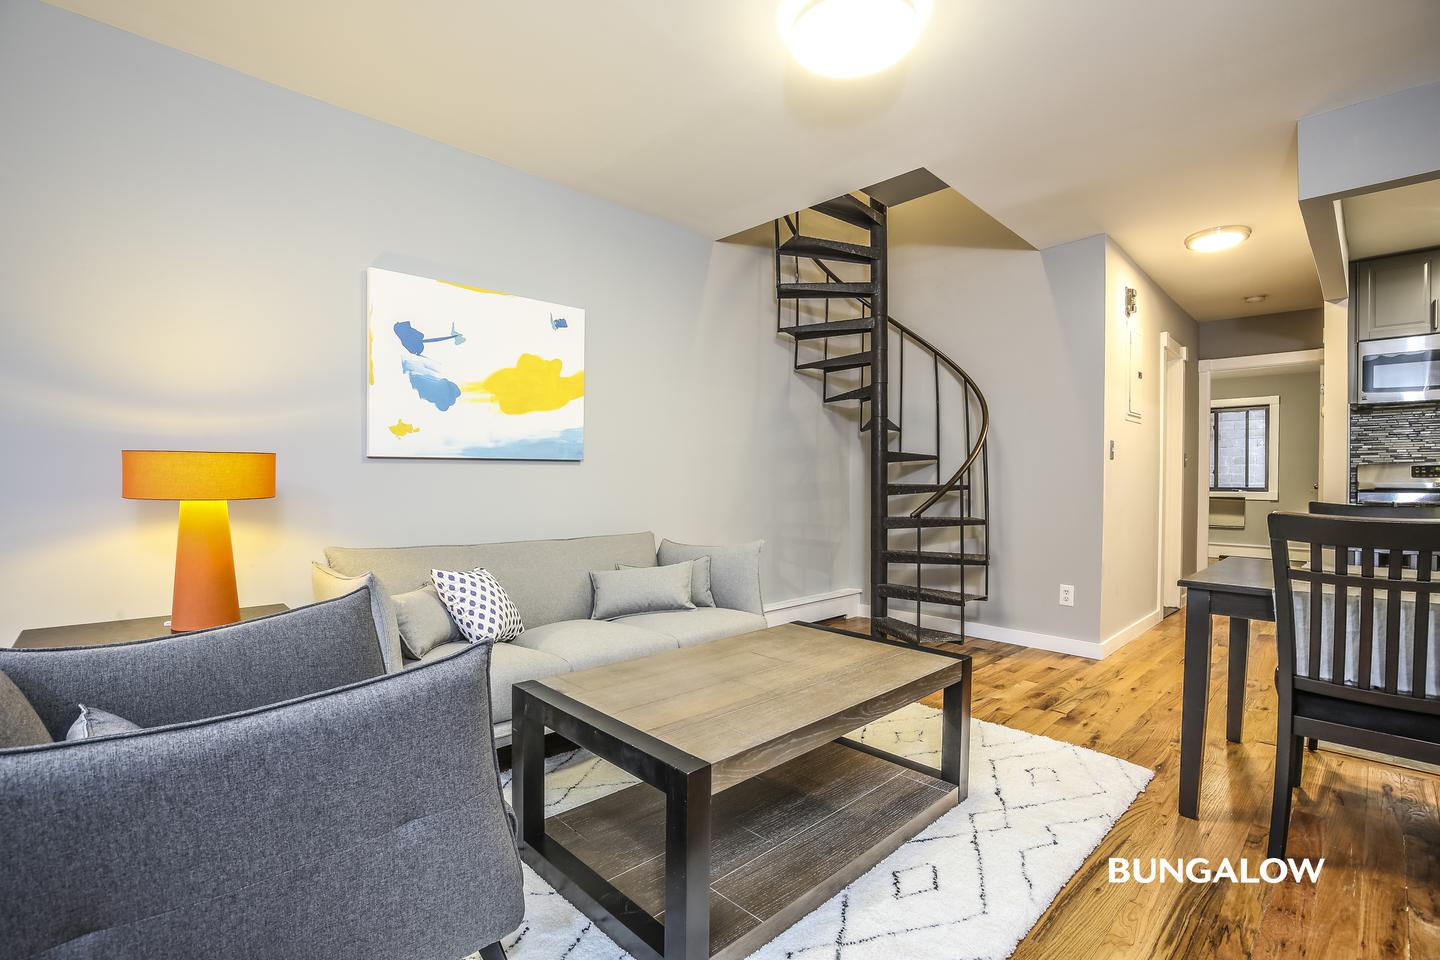 Sublets Near Nutley Private Bedroom in Stylish Bed-Stuy Duplex With Lovely Balcony for Nutley Students in Nutley, NJ